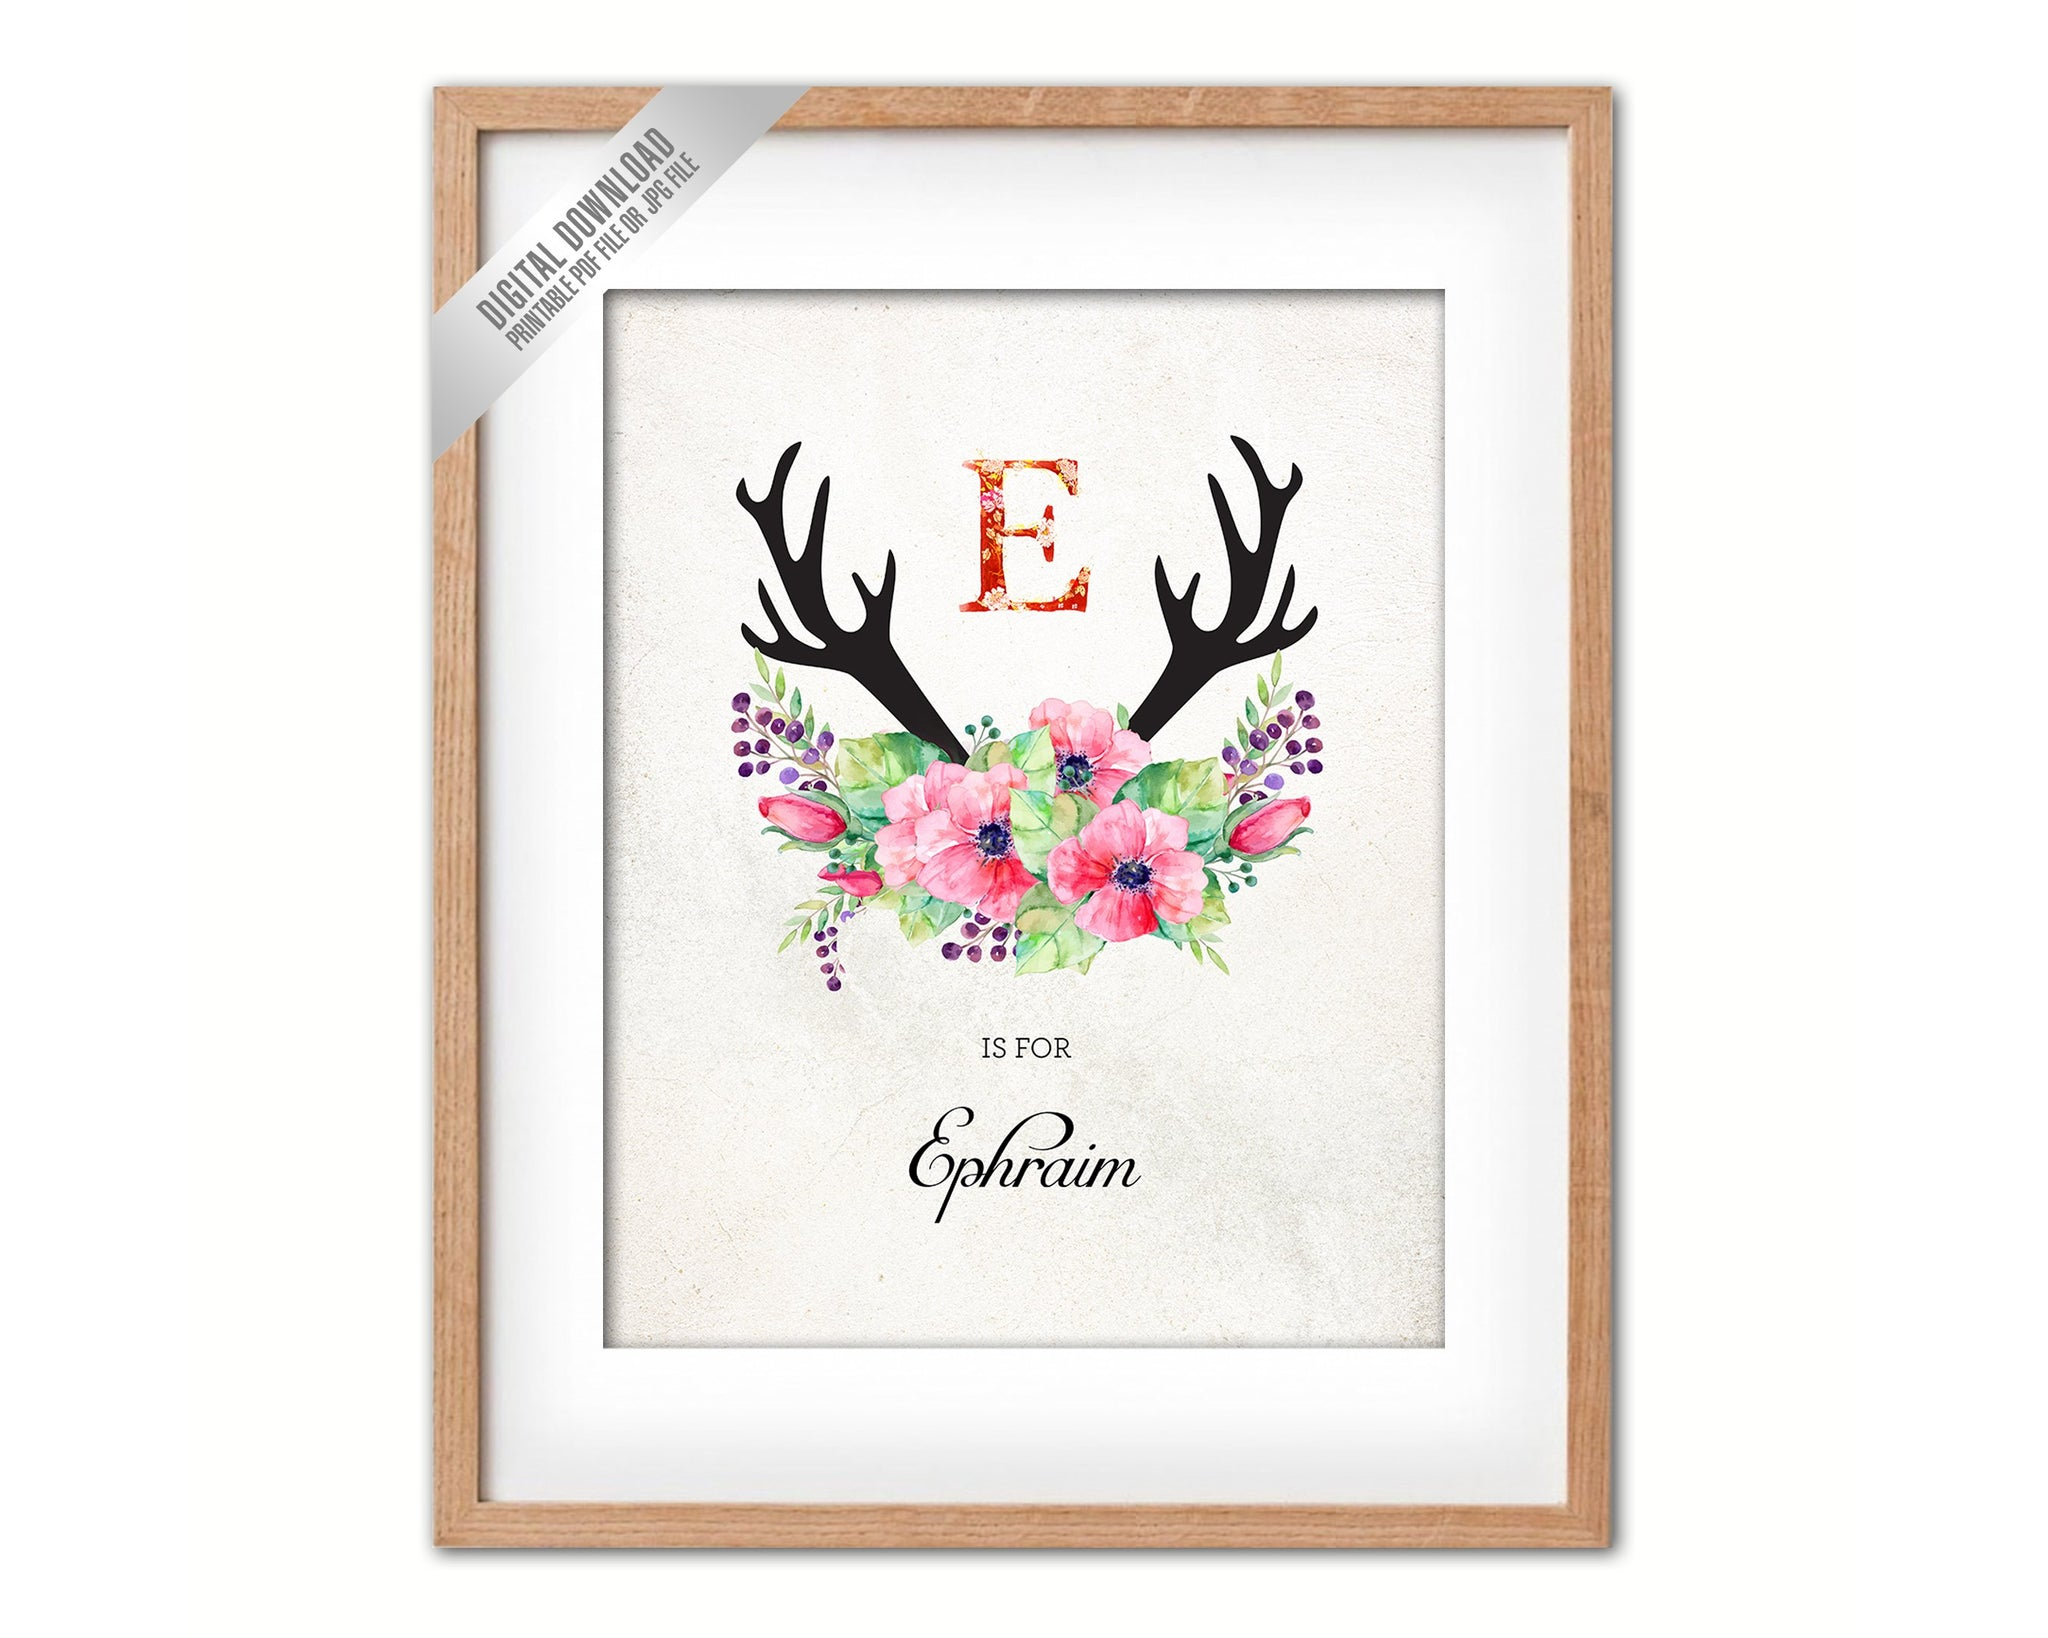 Initial Letter E Name Wall Art Printable Home Decor Baby Girl Room Watercolor Flowers Floral Gift for Her Digital Download